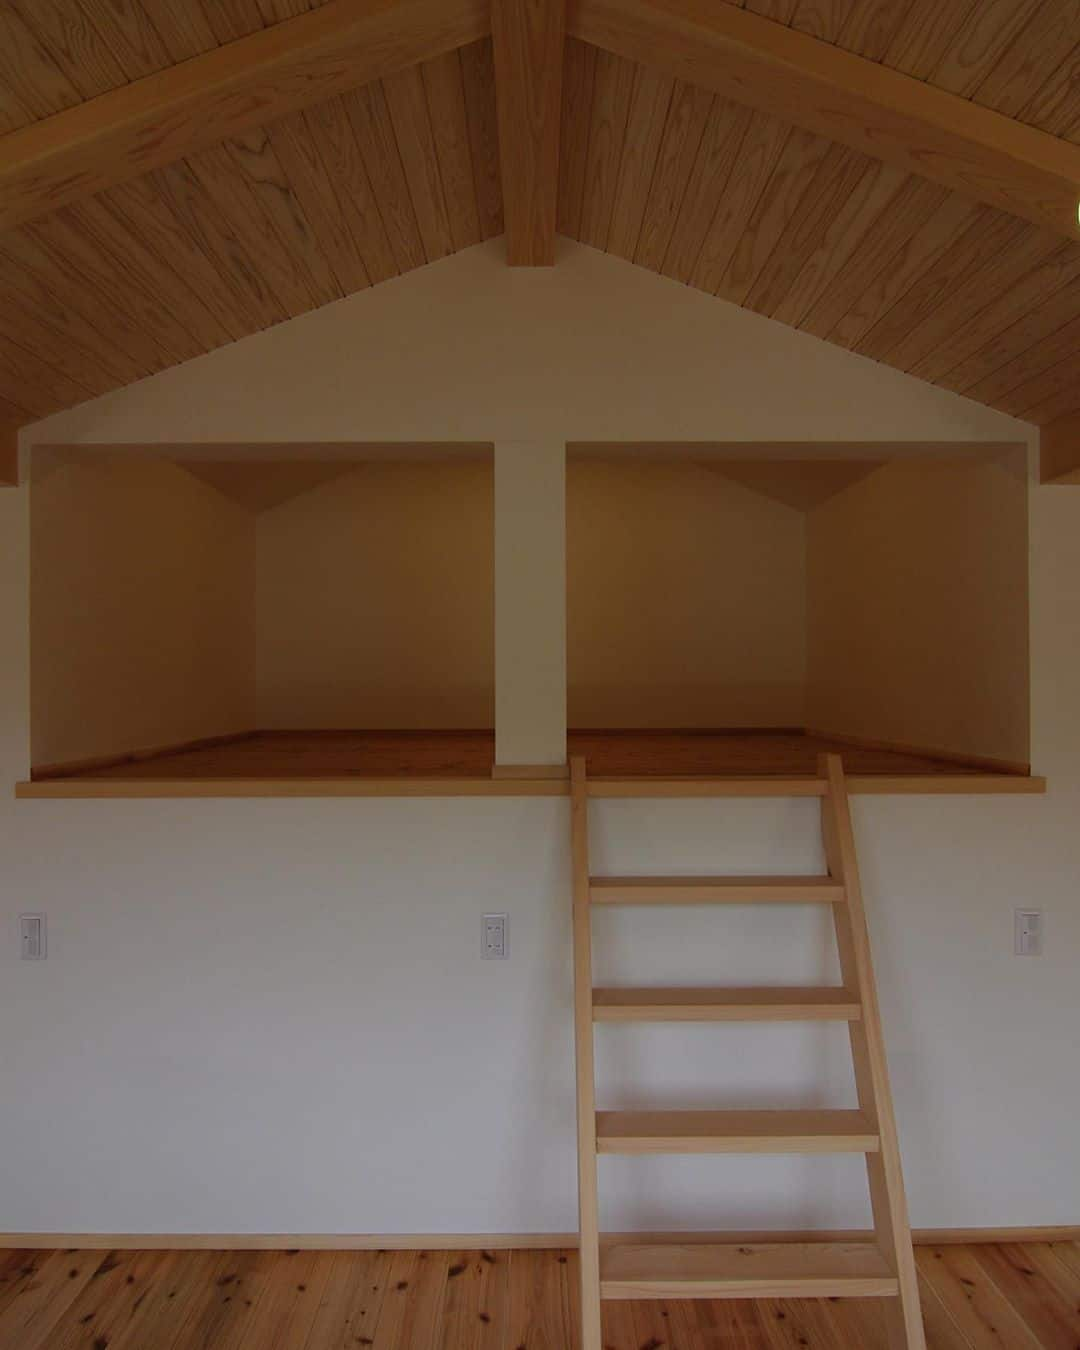 attic within an attic as storage